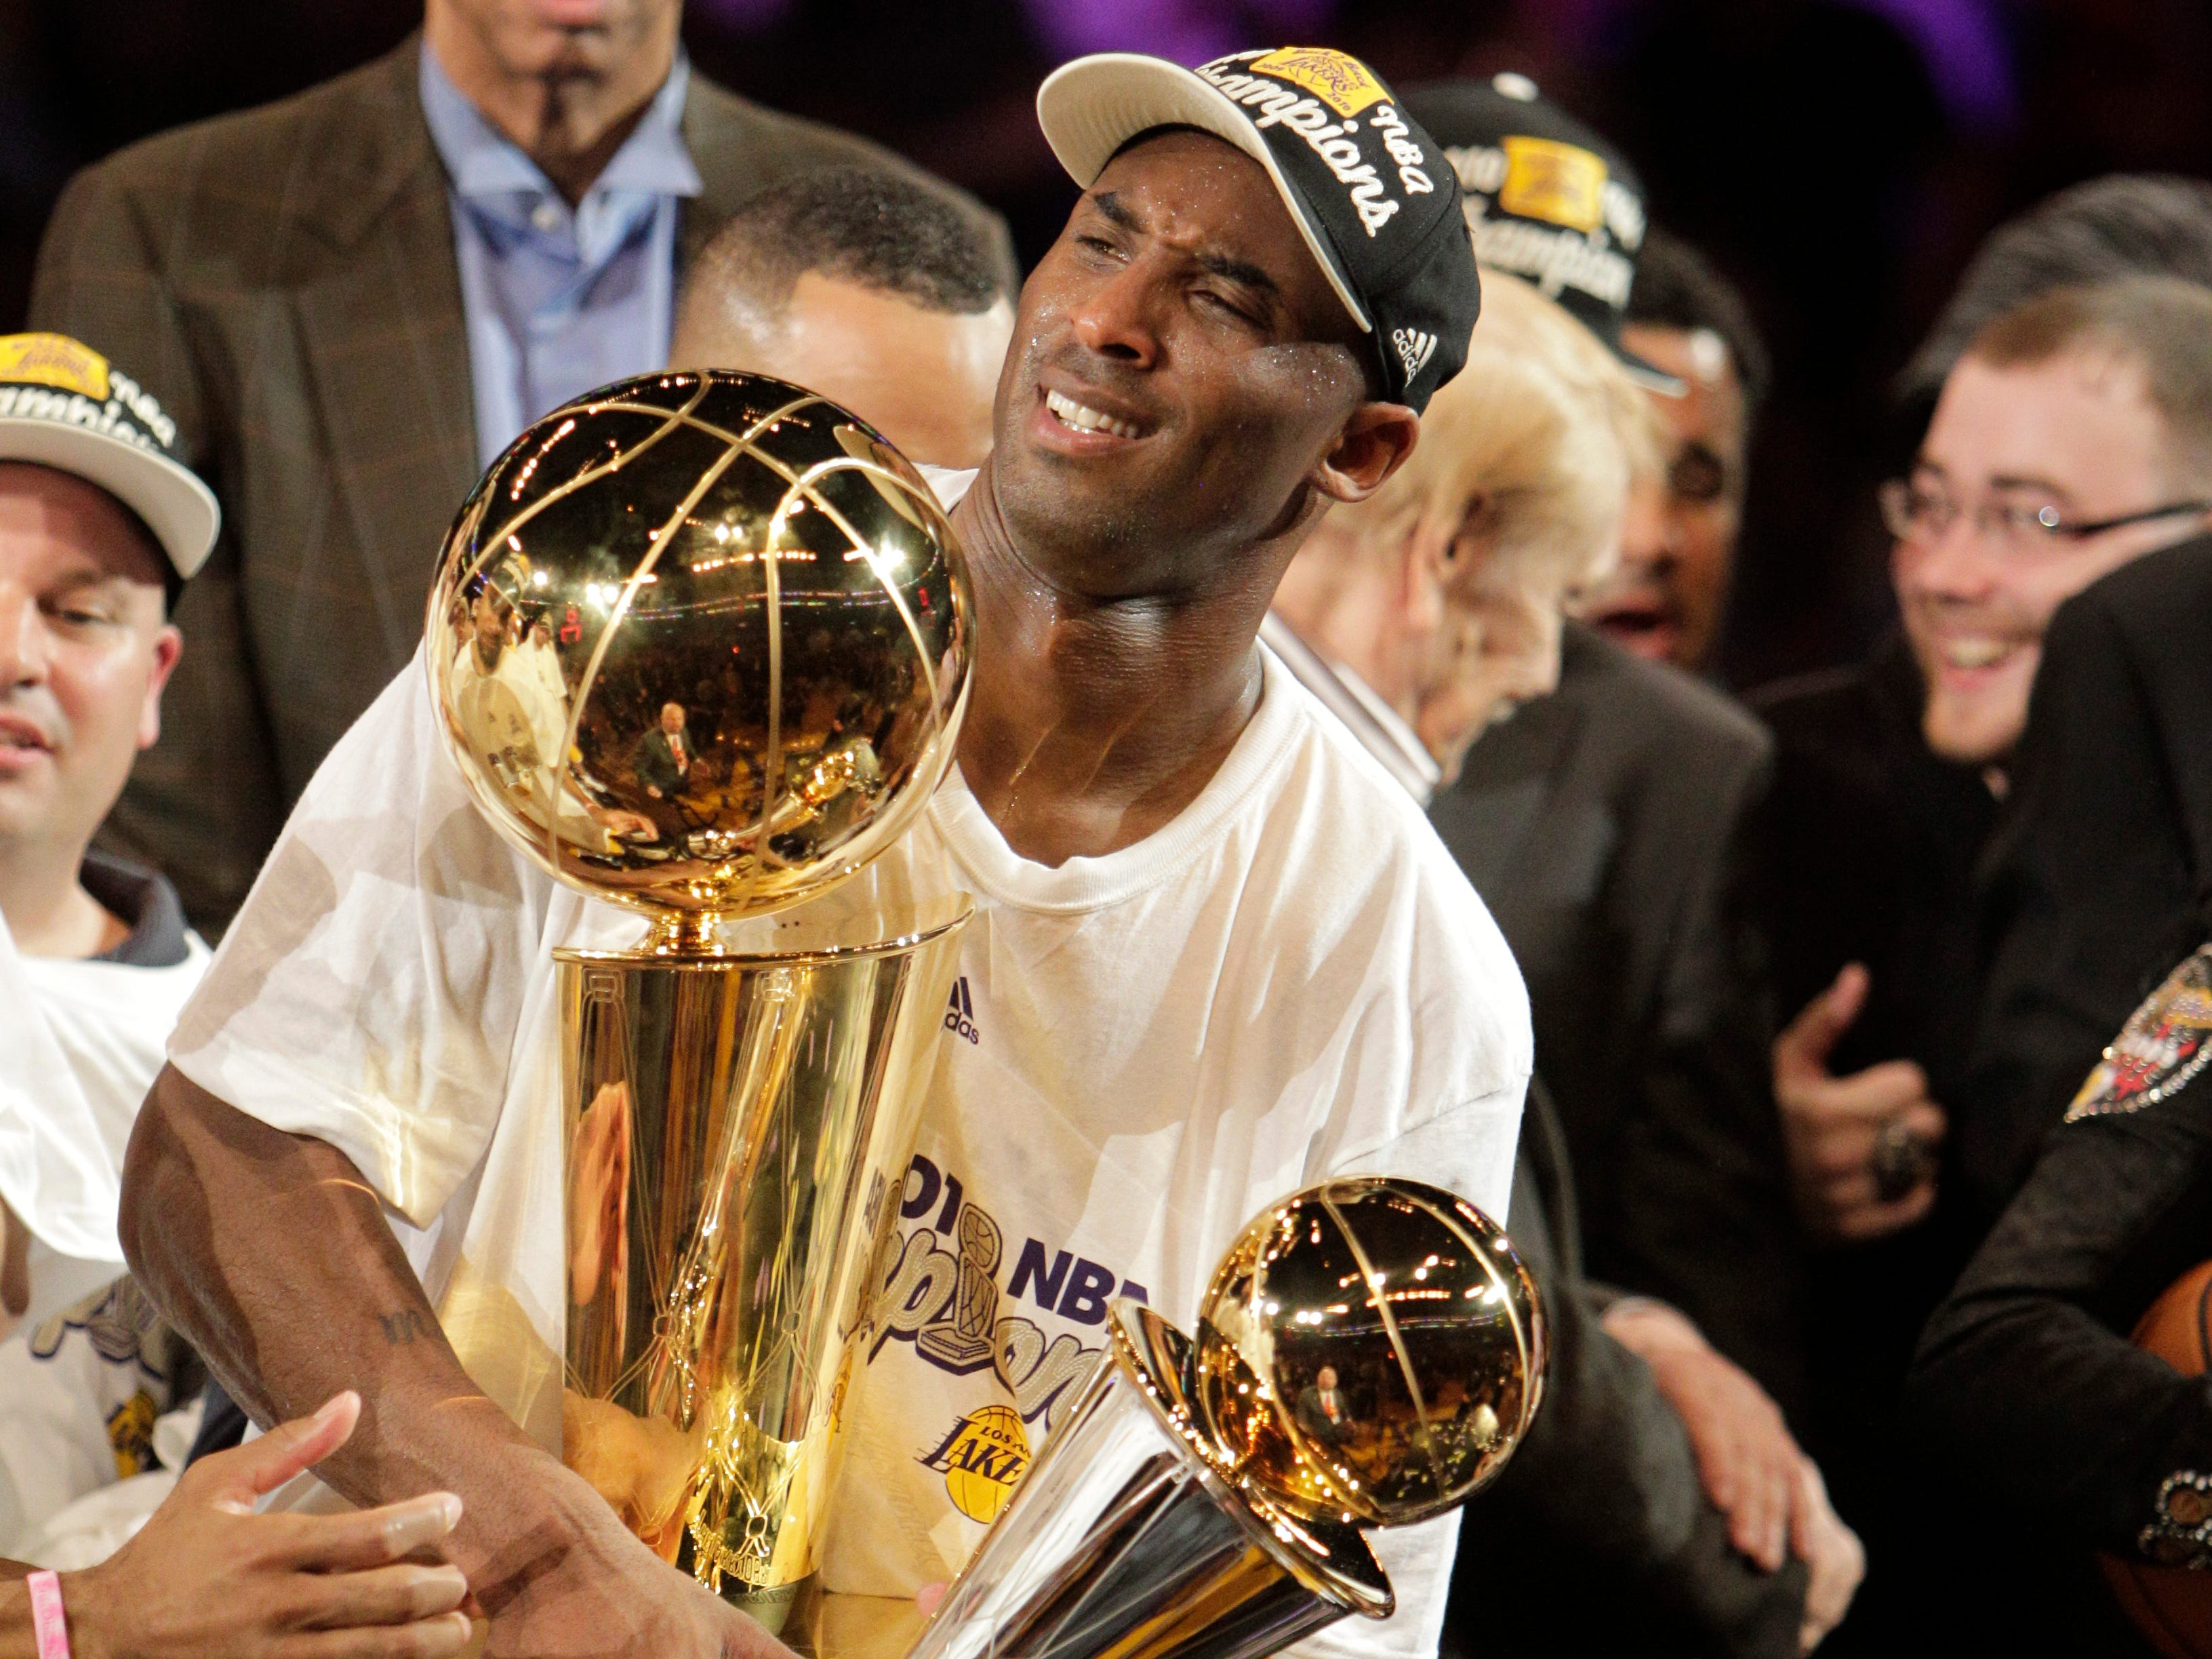 Kobe's fifth and final title came in 2010, the second of back-to-back titles.